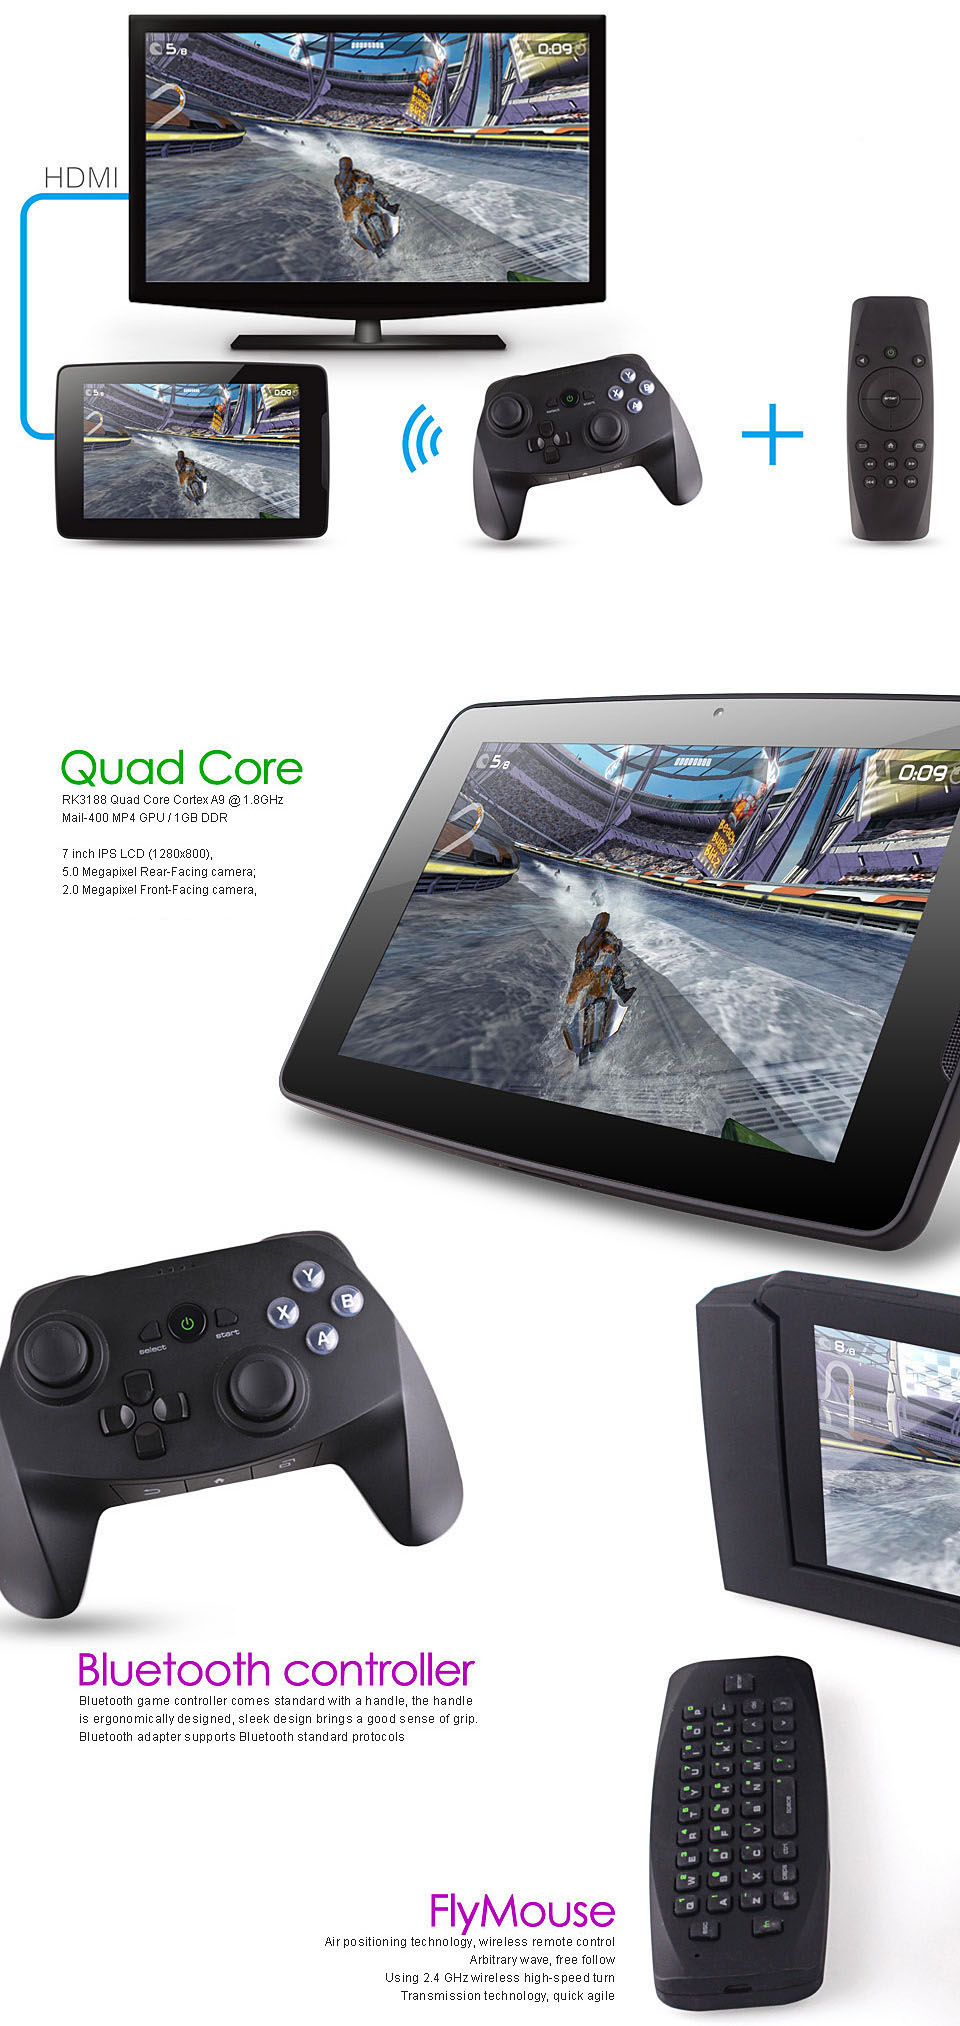 7 inch UNU M7006 Android 4 2 Game Tablet PC RK3188 Quad Core 1 8GHz